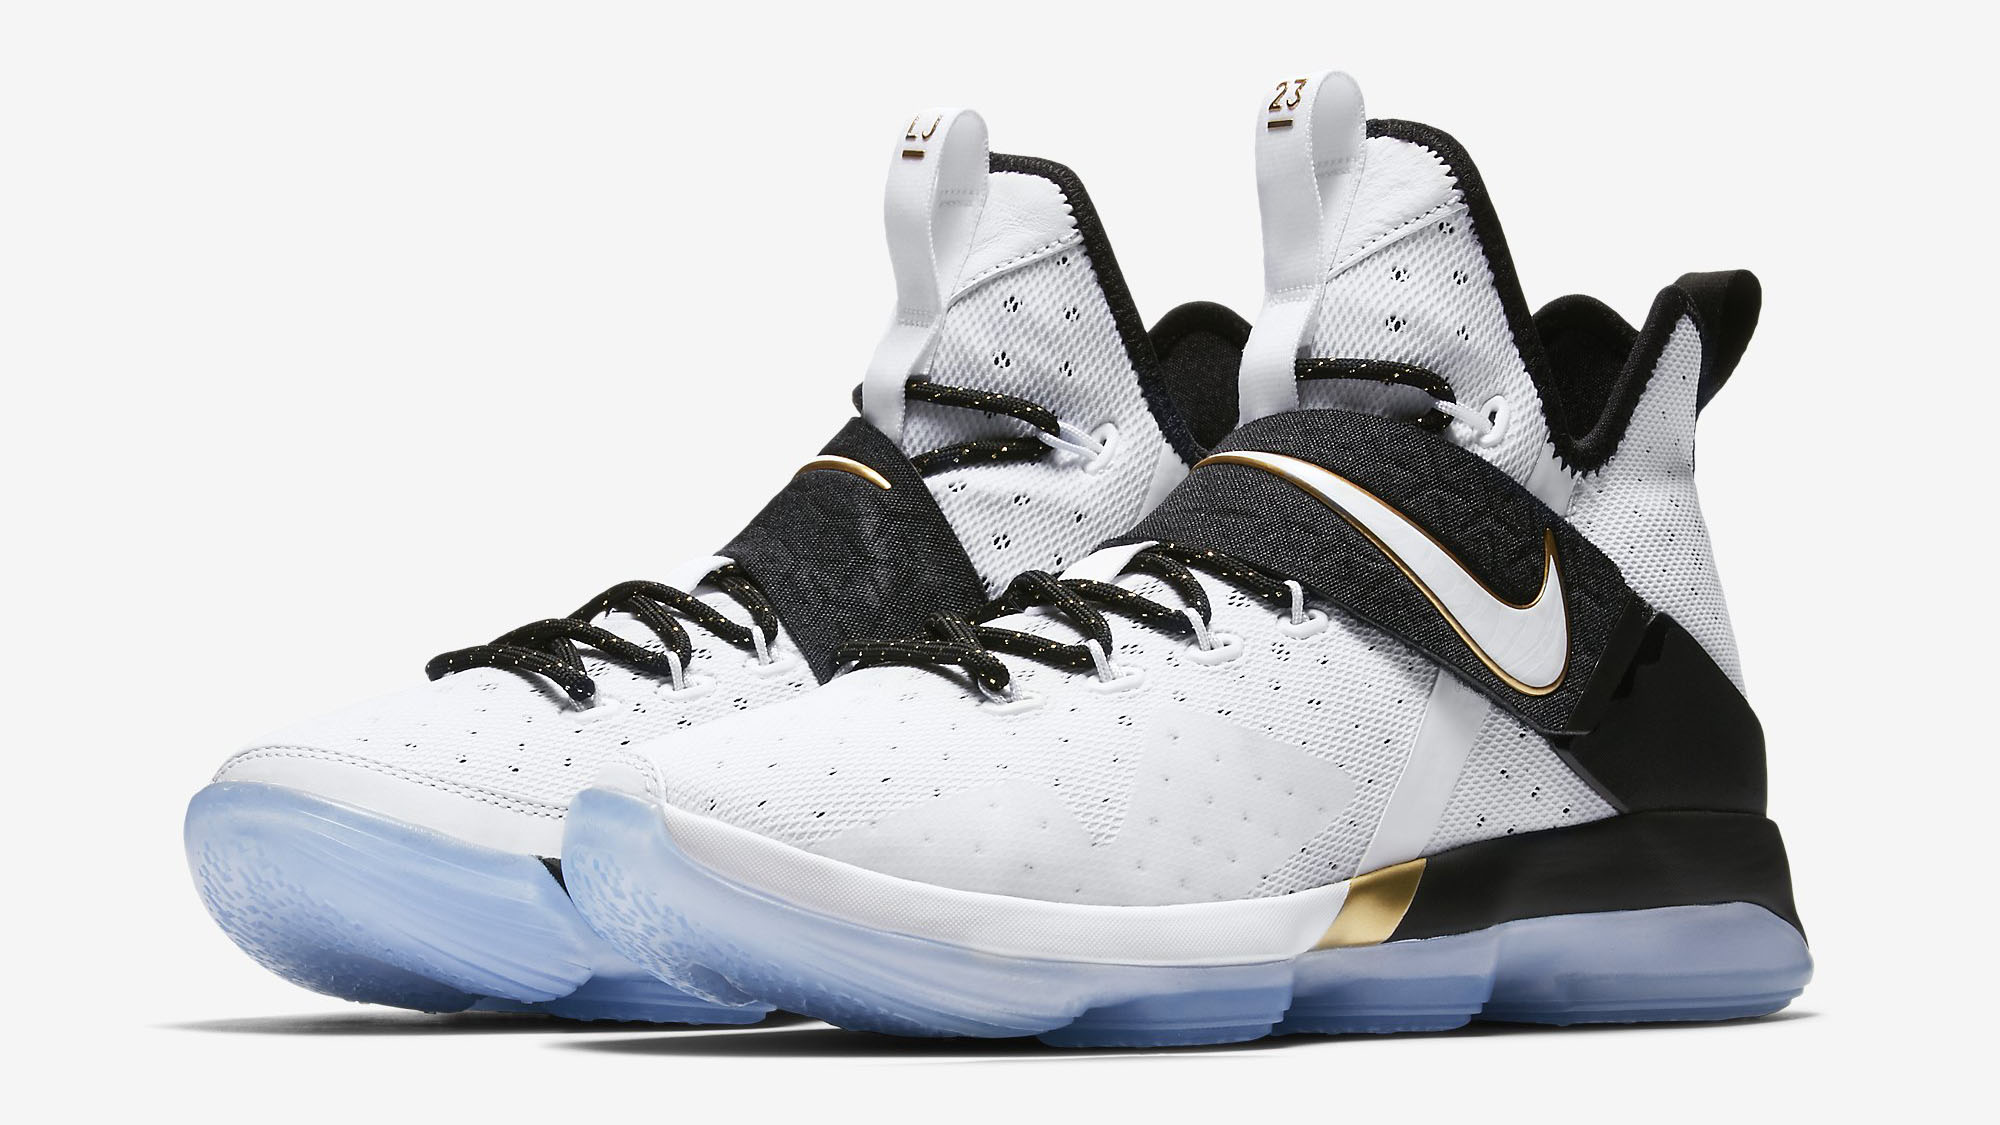 super popular a9fe6 24cc3 Nike LeBron 14 Performance Review